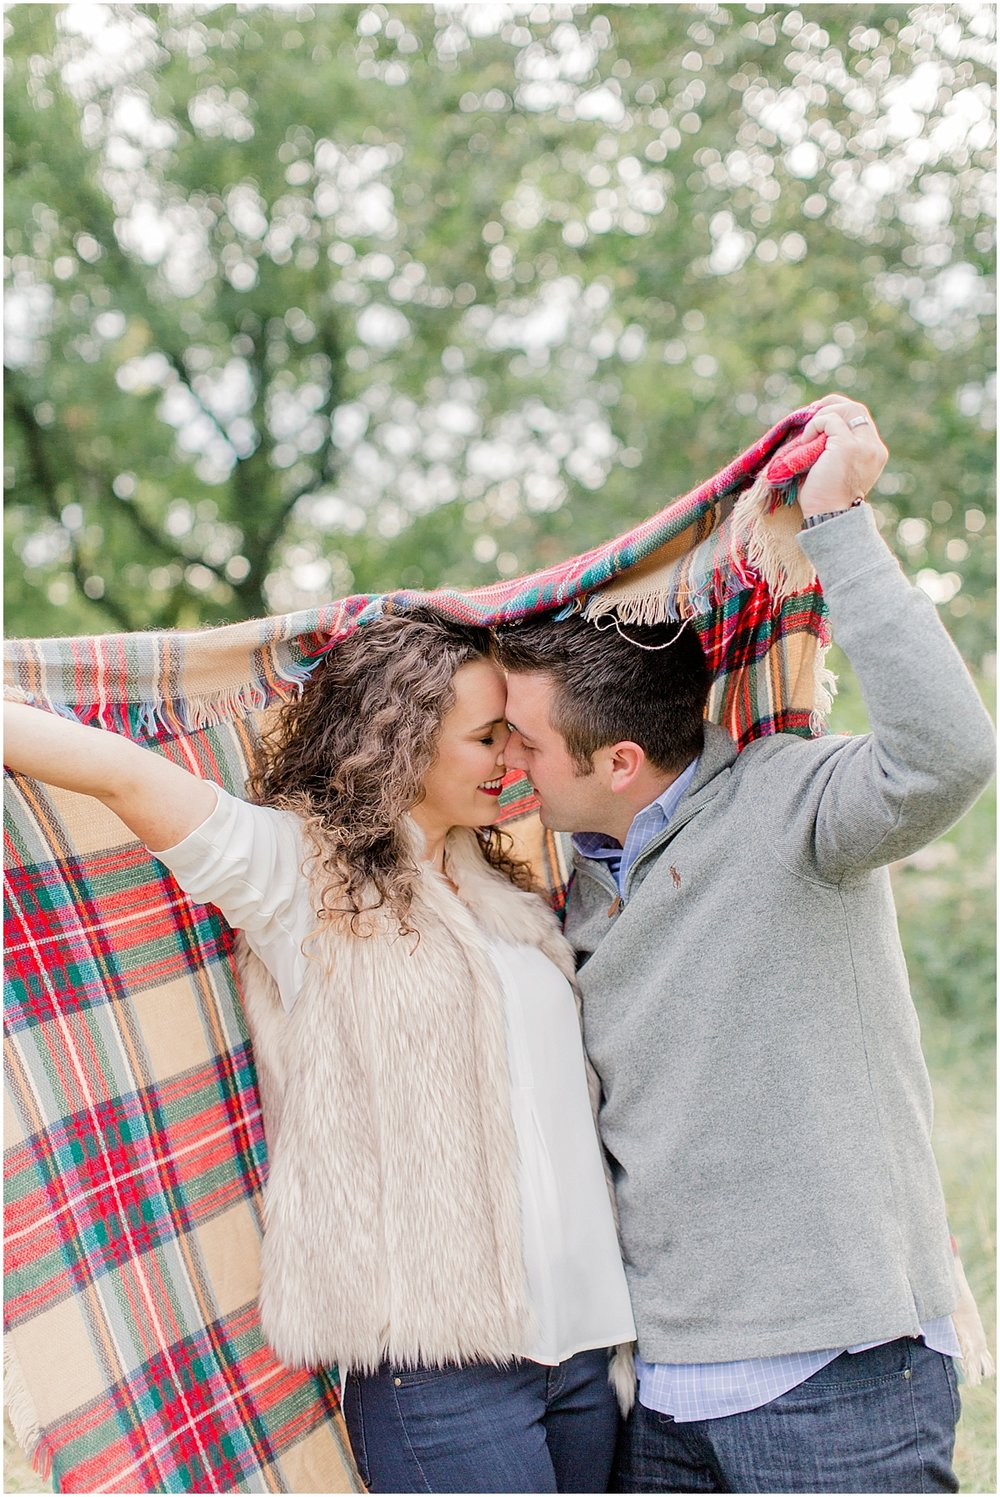 Fall Anniversary Ideas - Blanket Scarf and a Romantic Night at the Park